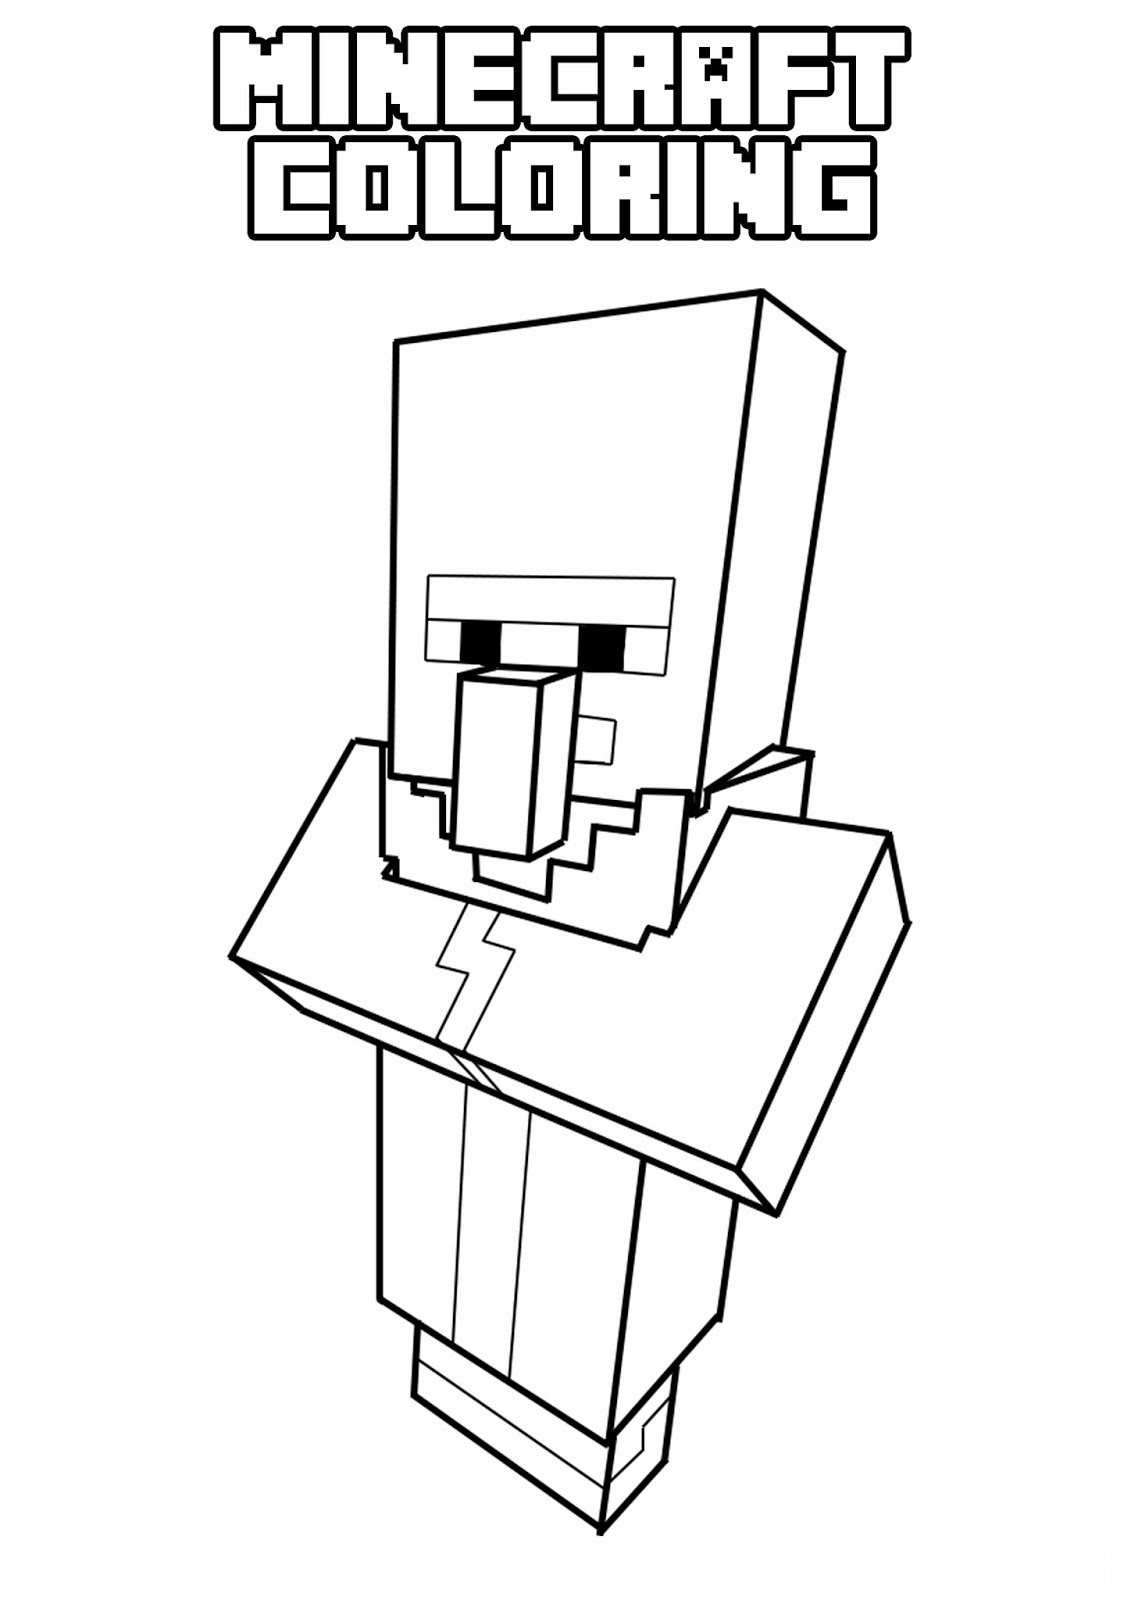 Free coloring pages of dantdm in